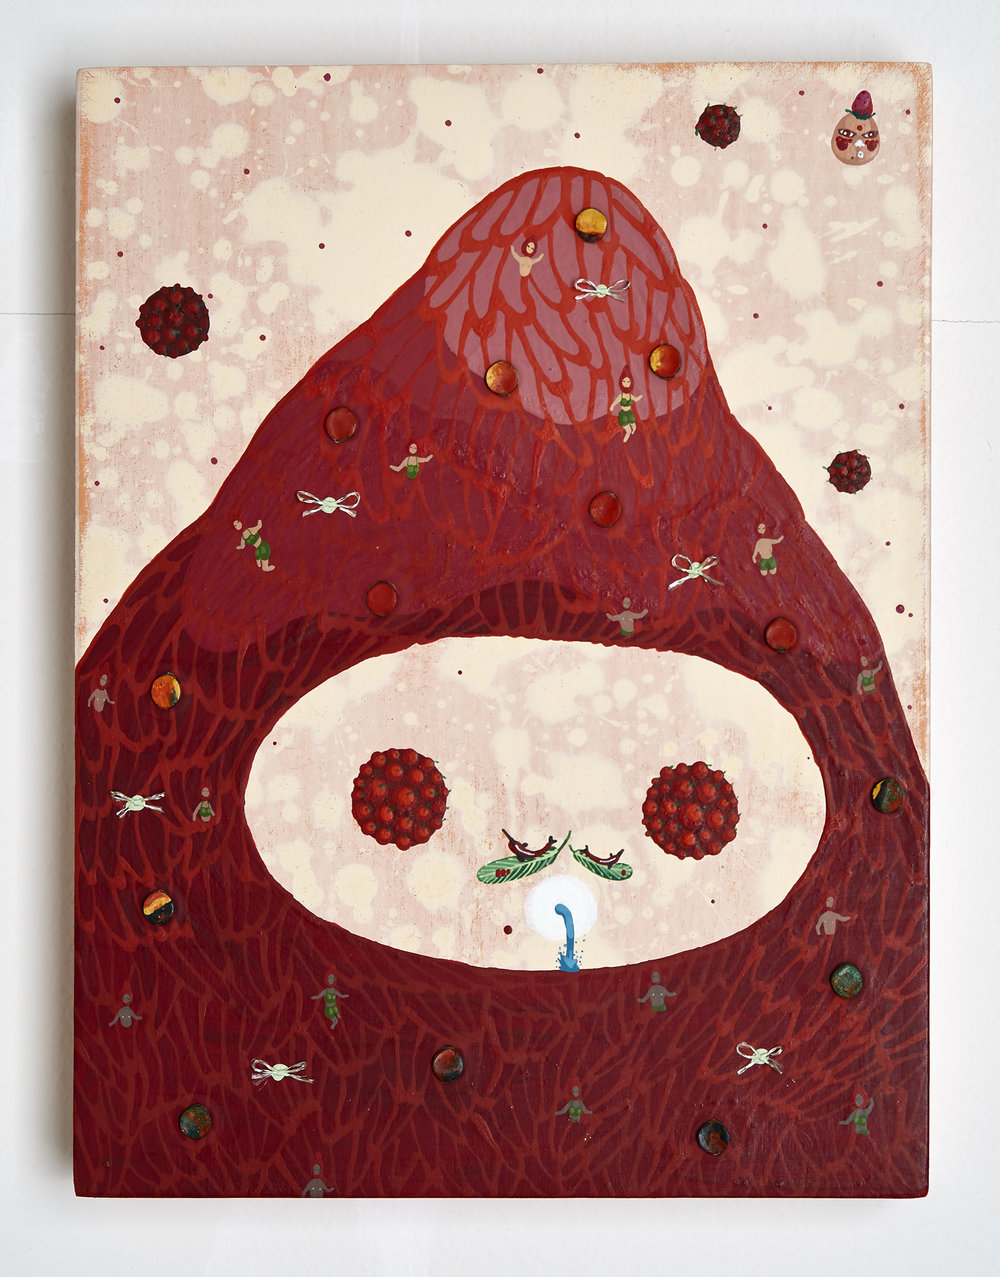 Mi Ju, Strawberry Mountain 2014 (acrylic on panel)